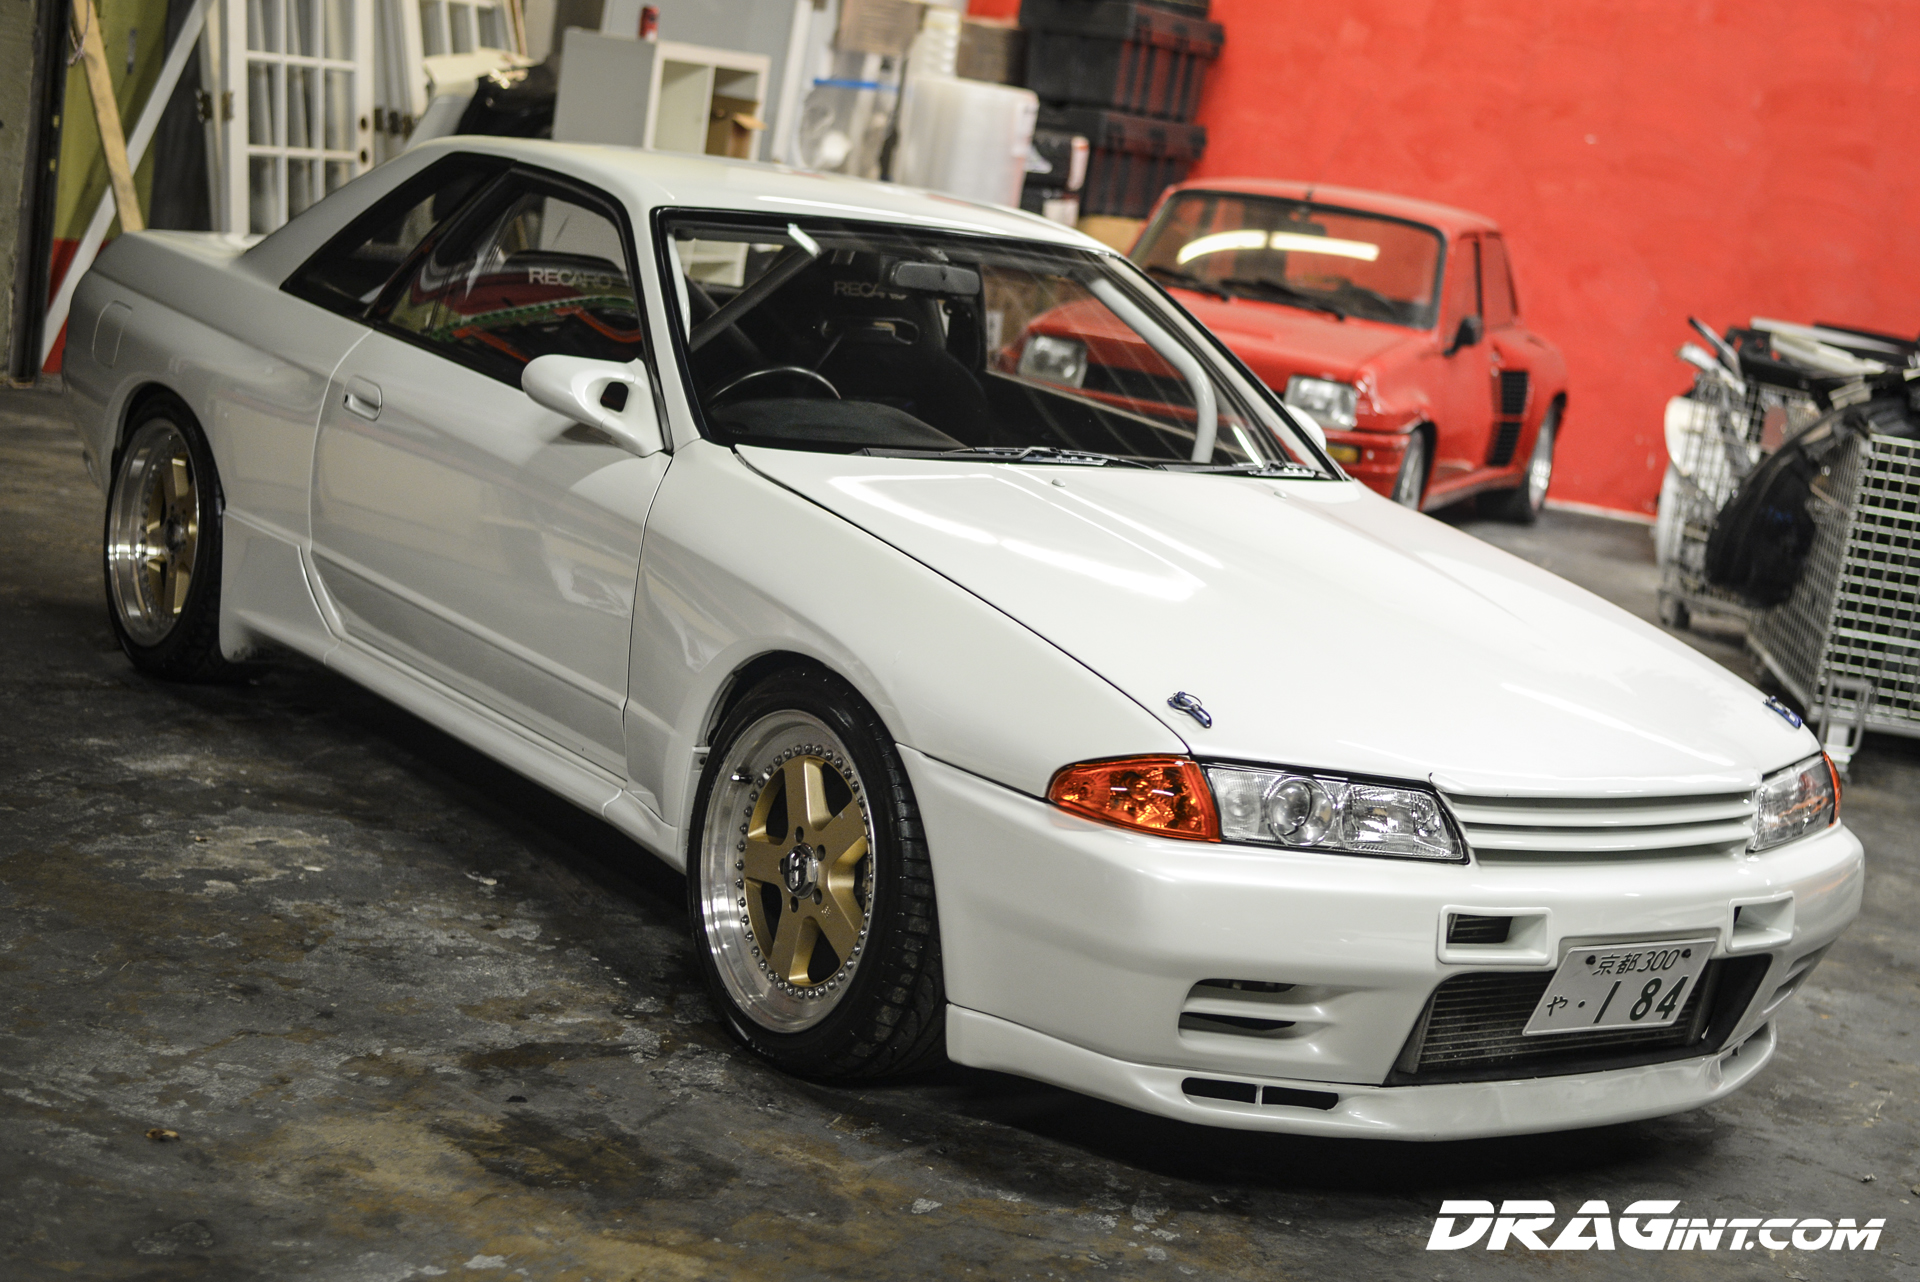 JDM Import '89 Nissan Skyline GTR R32 – From our 10.2014 Container